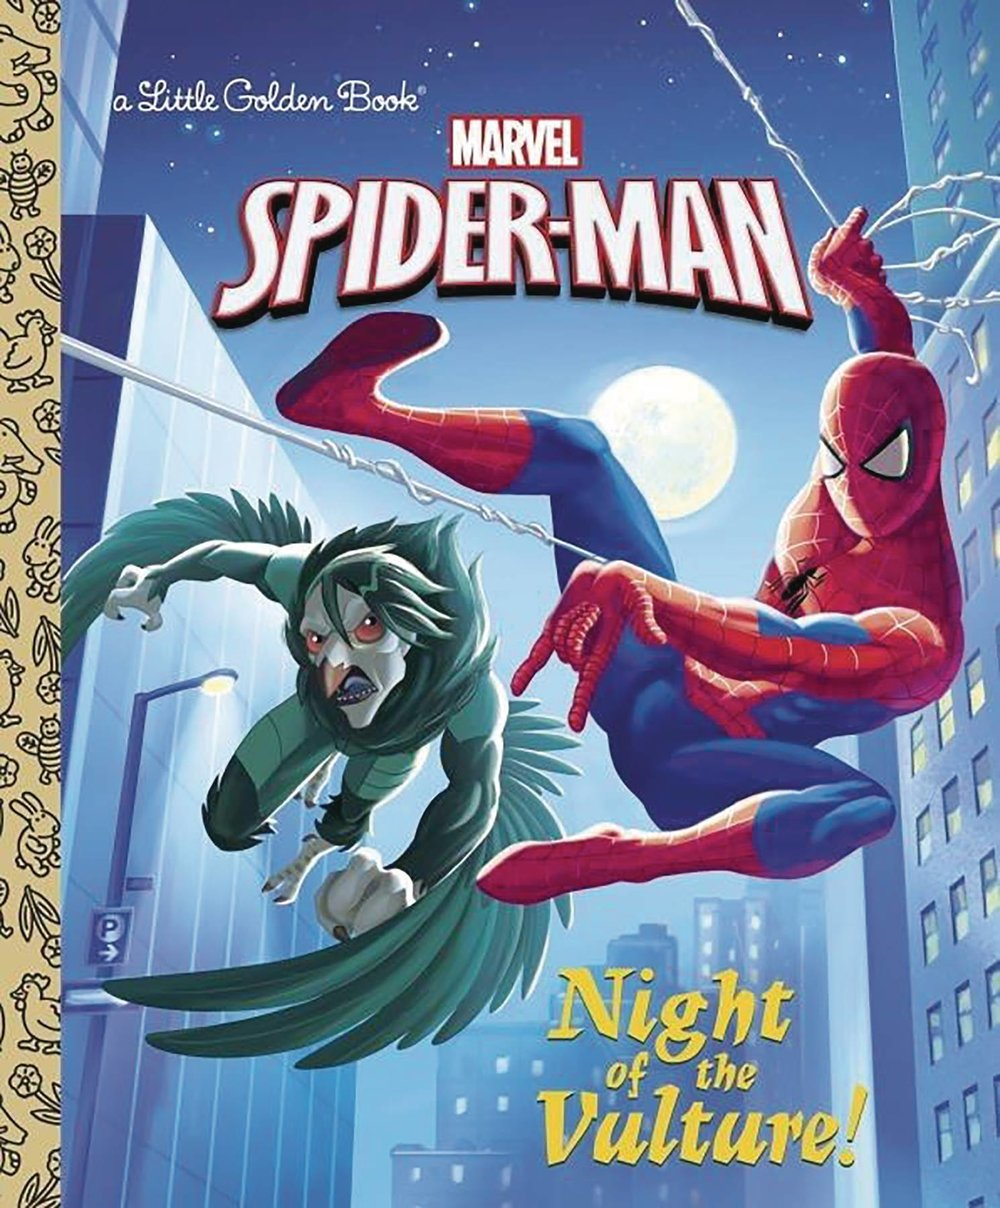 SPIDER MAN NIGHT OF VULTURE LITTLE GOLDEN BK.jpg